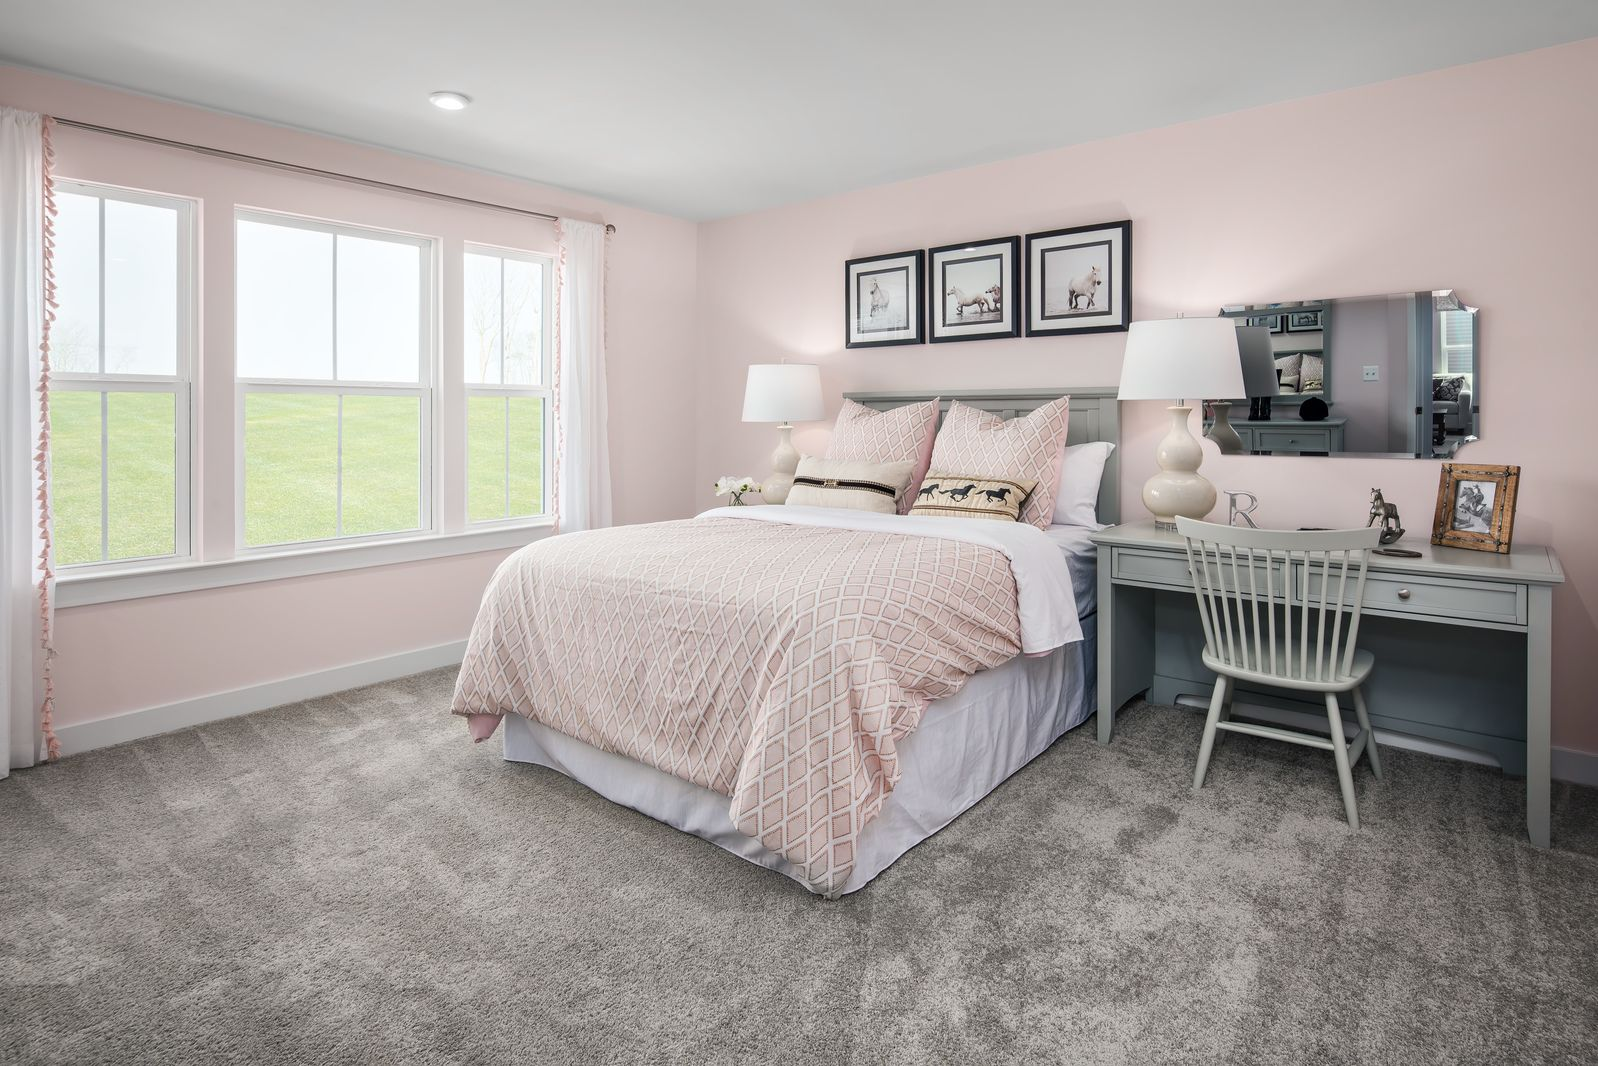 Bedroom featured in the Seneca By Ryan Homes in Washington, VA